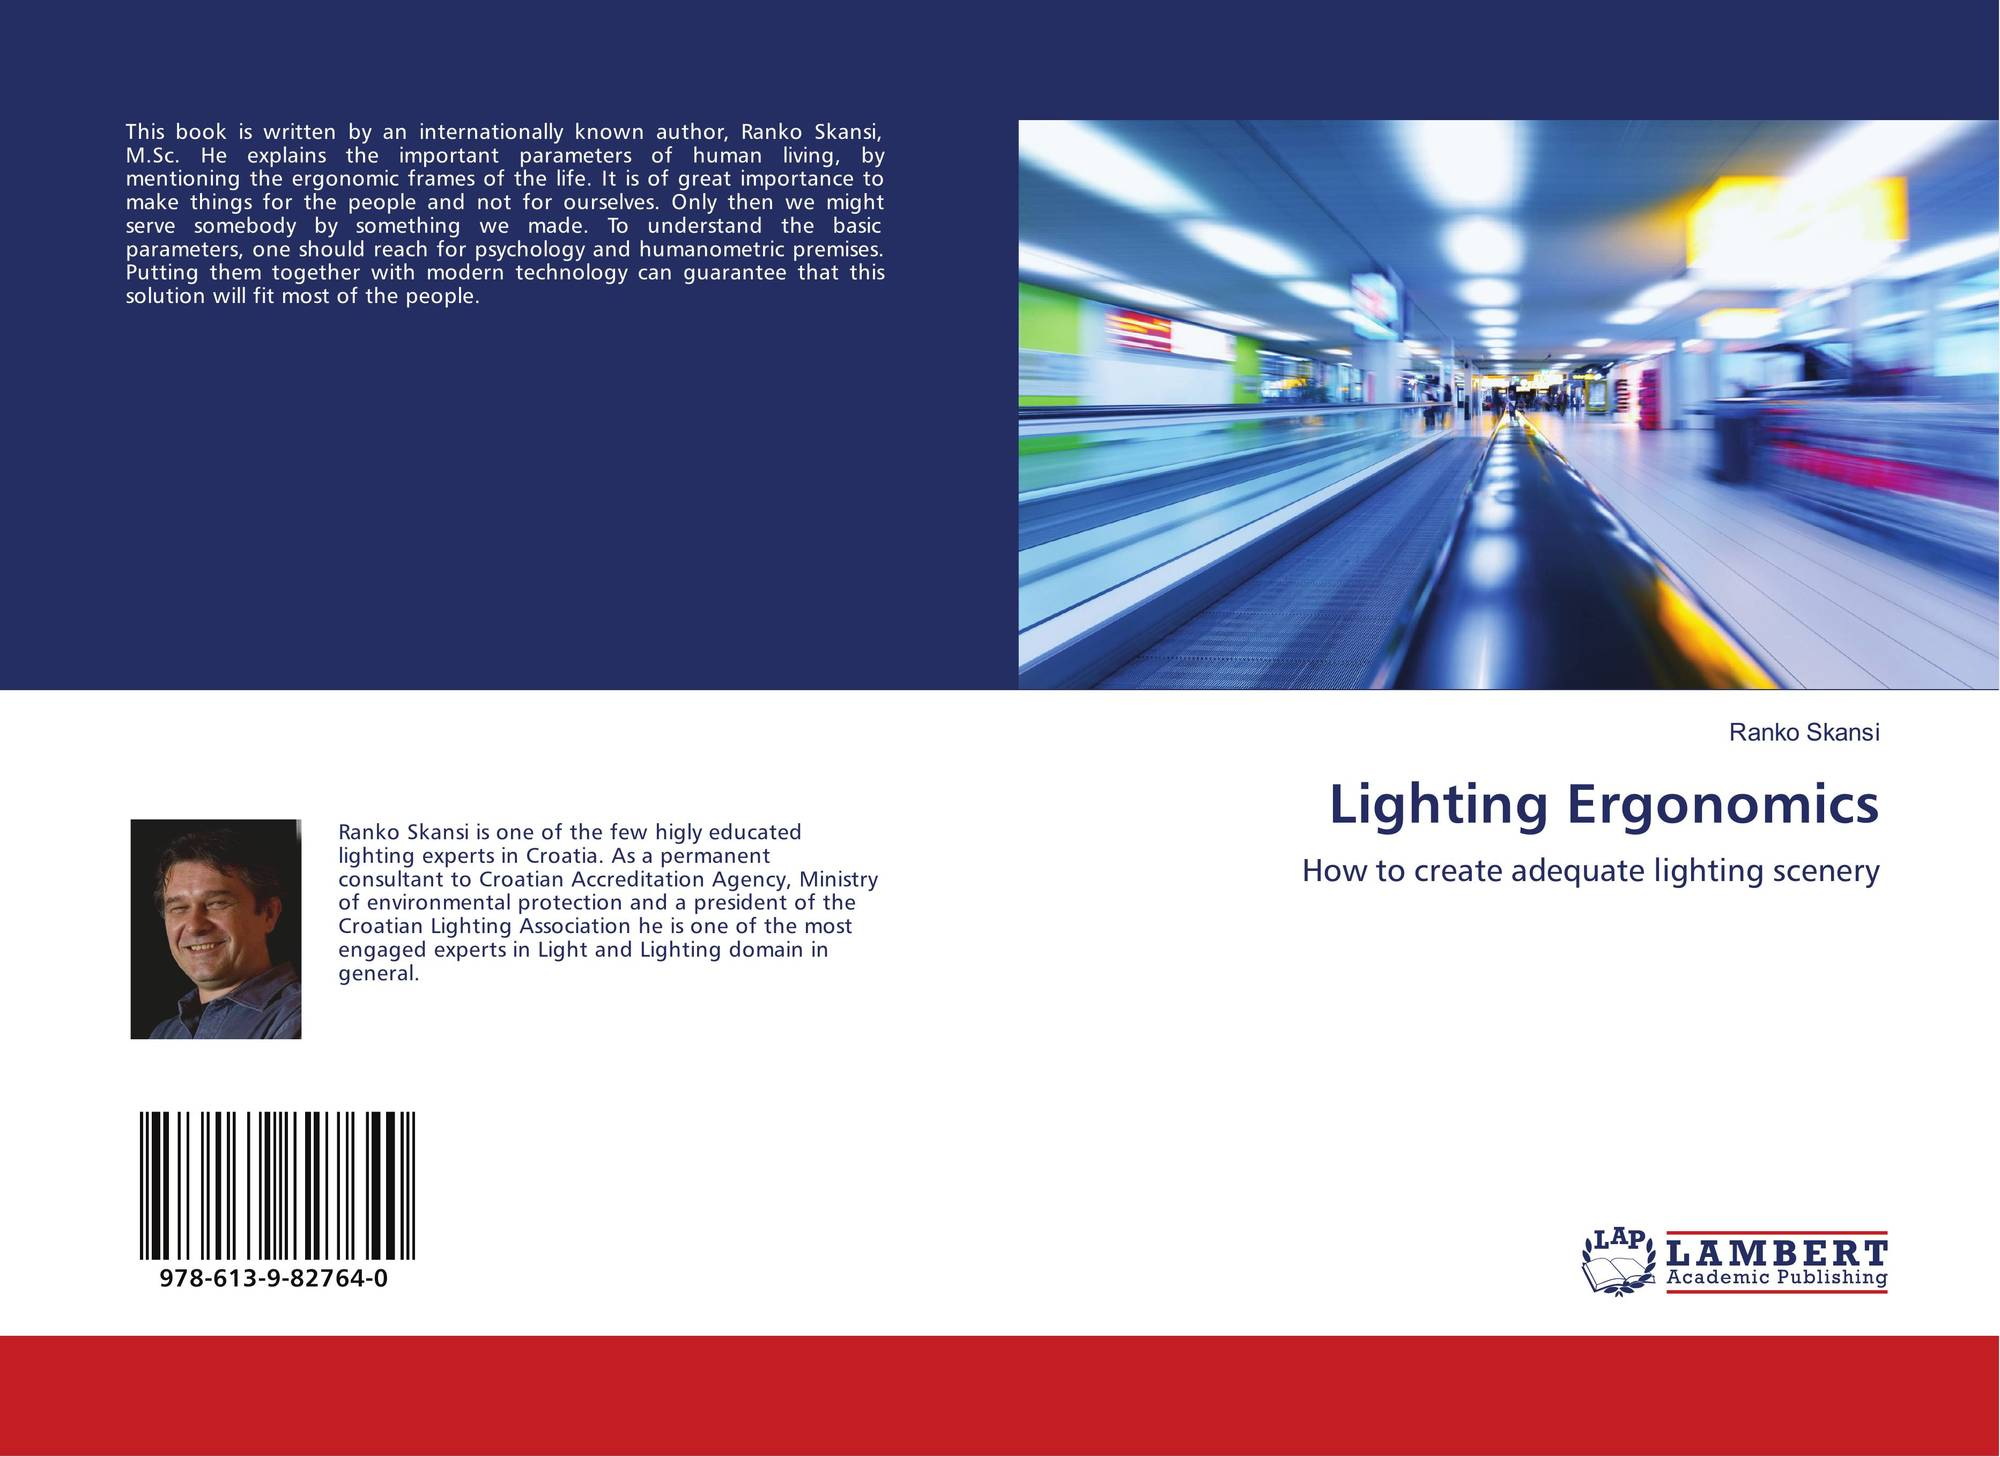 Bookcover of Lighting Ergonomics. 9786139827640  sc 1 st  MoreBooks! & Lighting Ergonomics 978-613-9-82764-0 6139827647 9786139827640 by ...